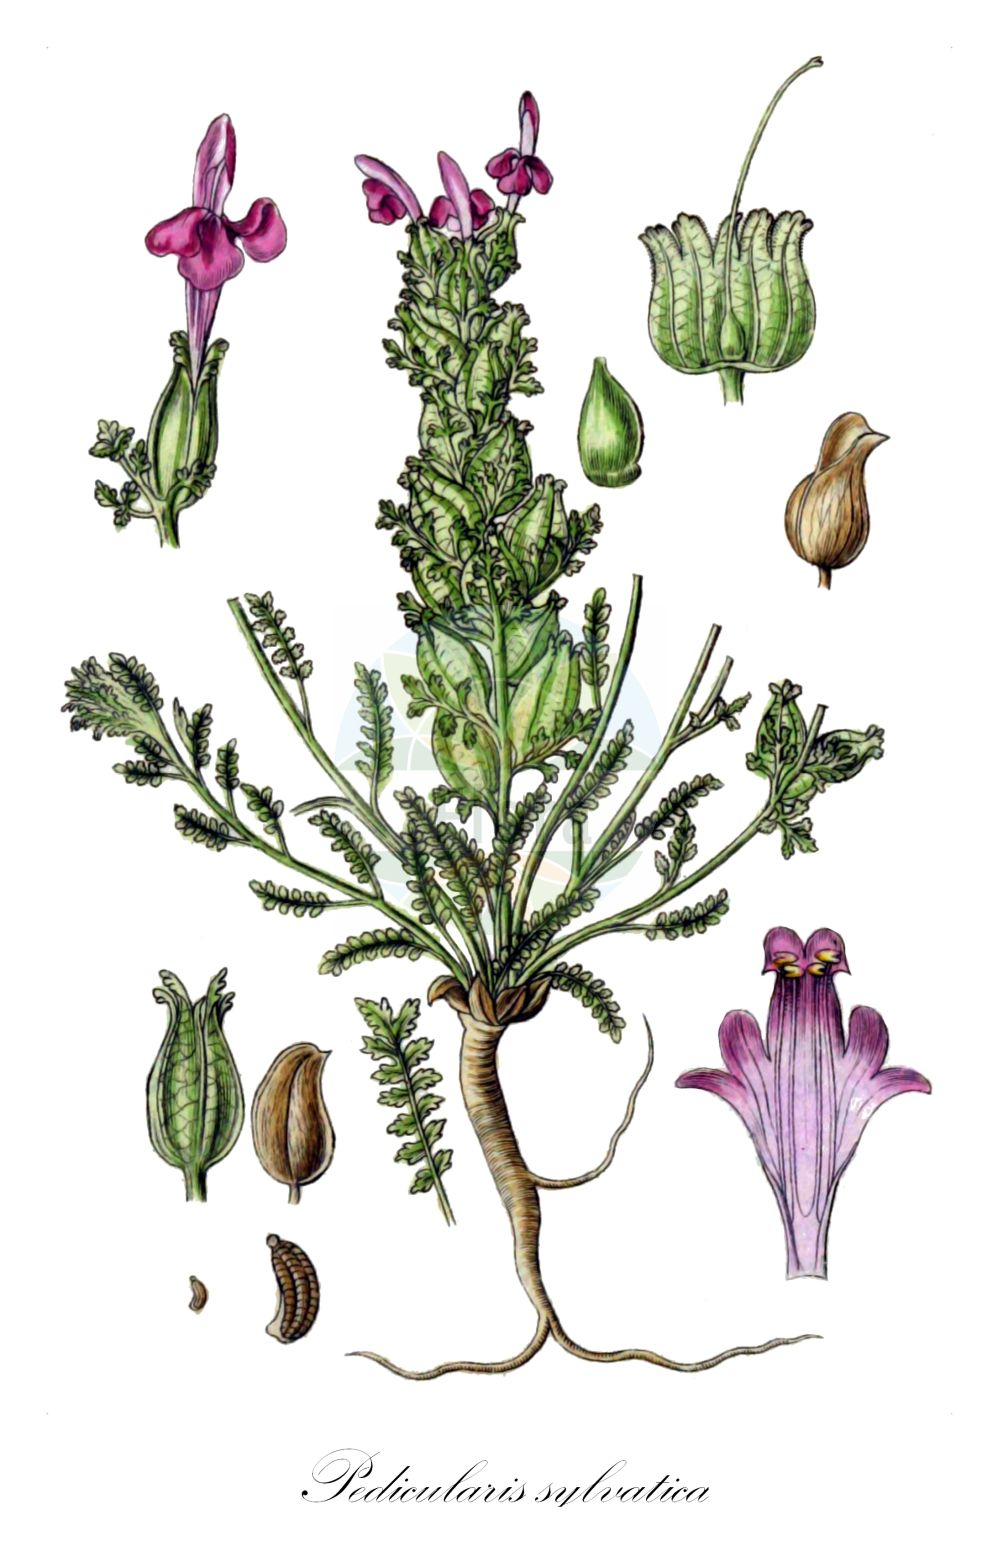 Historische Abbildung von Pedicularis sylvatica (Wald-Laeusekraut - Lousewort). Das Bild zeigt Blatt, Bluete, Frucht und Same. ---- Historical Drawing of Pedicularis sylvatica (Wald-Laeusekraut - Lousewort).The image is showing leaf, flower, fruit and seed.(Pedicularis sylvatica,Wald-Laeusekraut,Lousewort,Common ,Pedicularis,Laeusekraut,Lousewort,Orobanchaceae,Sommerwurzgewaechse,Broomrape family,Blatt,Bluete,Frucht,Same,leaf,flower,fruit,seed,Sturm (1796f))